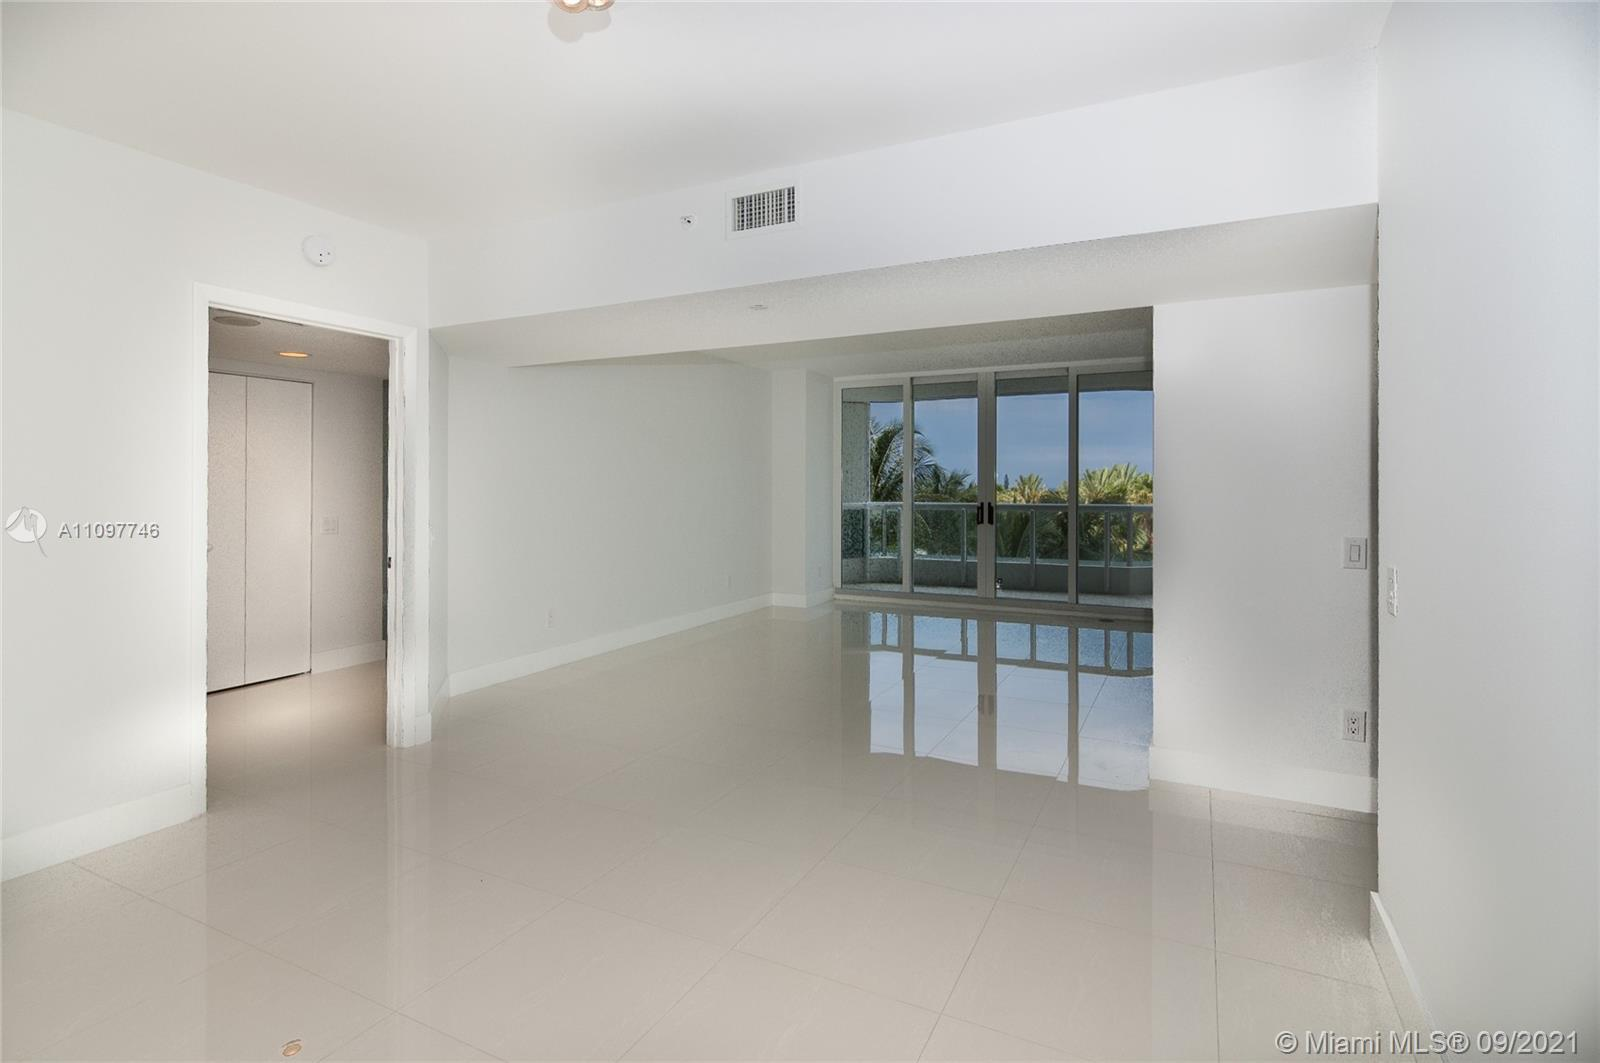 EXCELLENT OPPORTUNITY @ THE POINT SOUTH TOWER!! 1,696SF UPGRADED UNIT. 2 BED / 2 BATH + DEN (could b